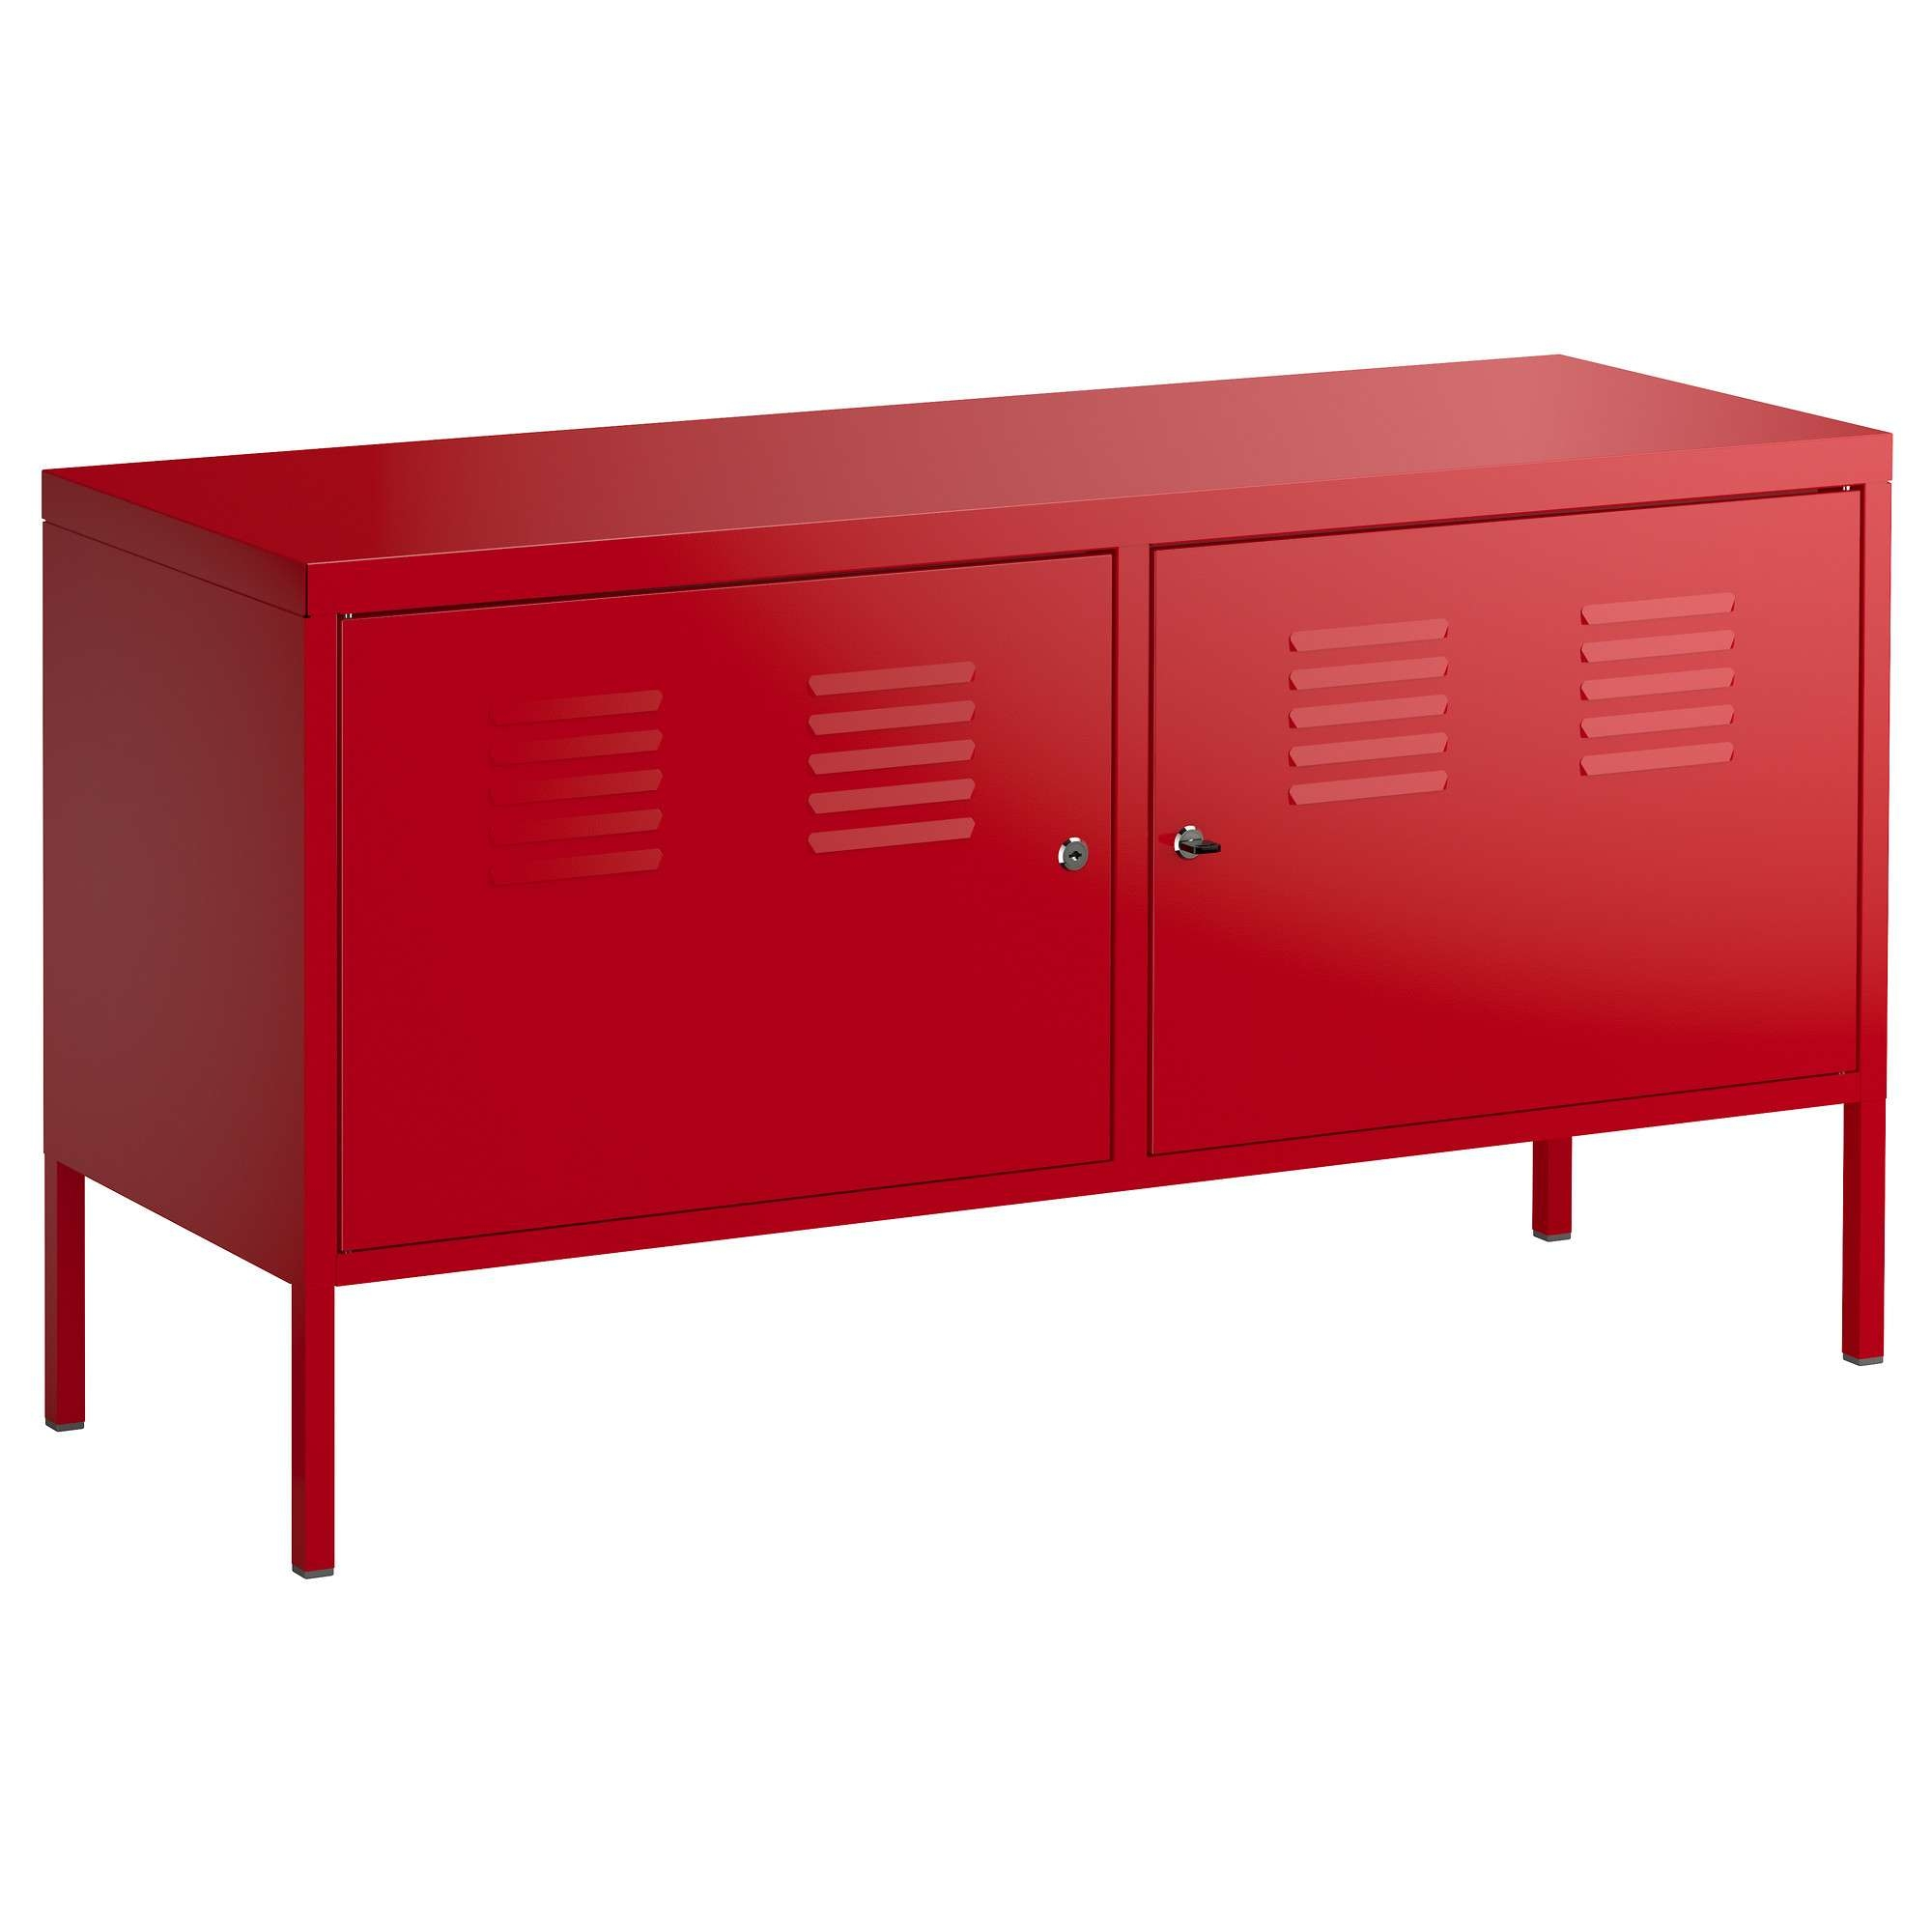 Ikea Ps Cabinet – Red – Ikea Inside Ikea Sideboards (View 10 of 20)